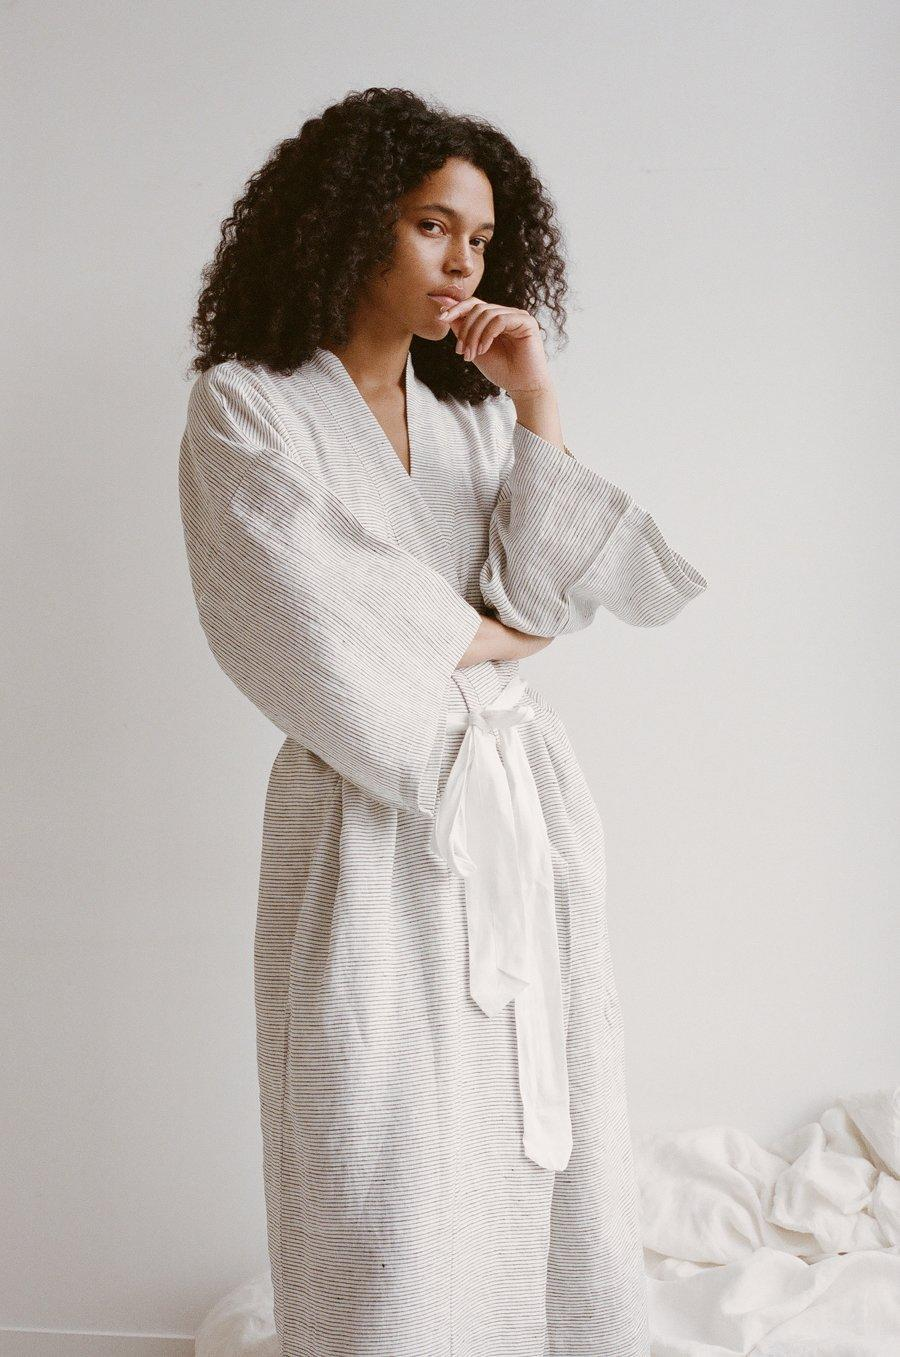 """<p>A French linen lining makes this <a href=""""https://www.marthastewart.com/7753406/best-loungewear"""" rel=""""nofollow noopener"""" target=""""_blank"""" data-ylk=""""slk:luxe lounging robe"""" class=""""link rapid-noclick-resp"""">luxe lounging robe</a> feel as light as a feather against your skin. The biodegradable garments are also made using a """"slow fashion"""" production model in a warehouse that operates sustainably on every front, from how and where it ships products to internal climate control. And when you buy products from Deji Studios, they will be shipped to your home in compostable packaging, which means their offerings are green from start to finish.</p> <p><strong><em>Shop Now: </em></strong><em>Deji Studios Pinstripe Robe, $139, </em><a href=""""https://deijistudios.com/collections/robes/products/the-02-full-length-robe-in-pinstripe"""" rel=""""nofollow noopener"""" target=""""_blank"""" data-ylk=""""slk:dejistudios.com"""" class=""""link rapid-noclick-resp""""><em>dejistudios.com</em></a><em>.</em></p>"""